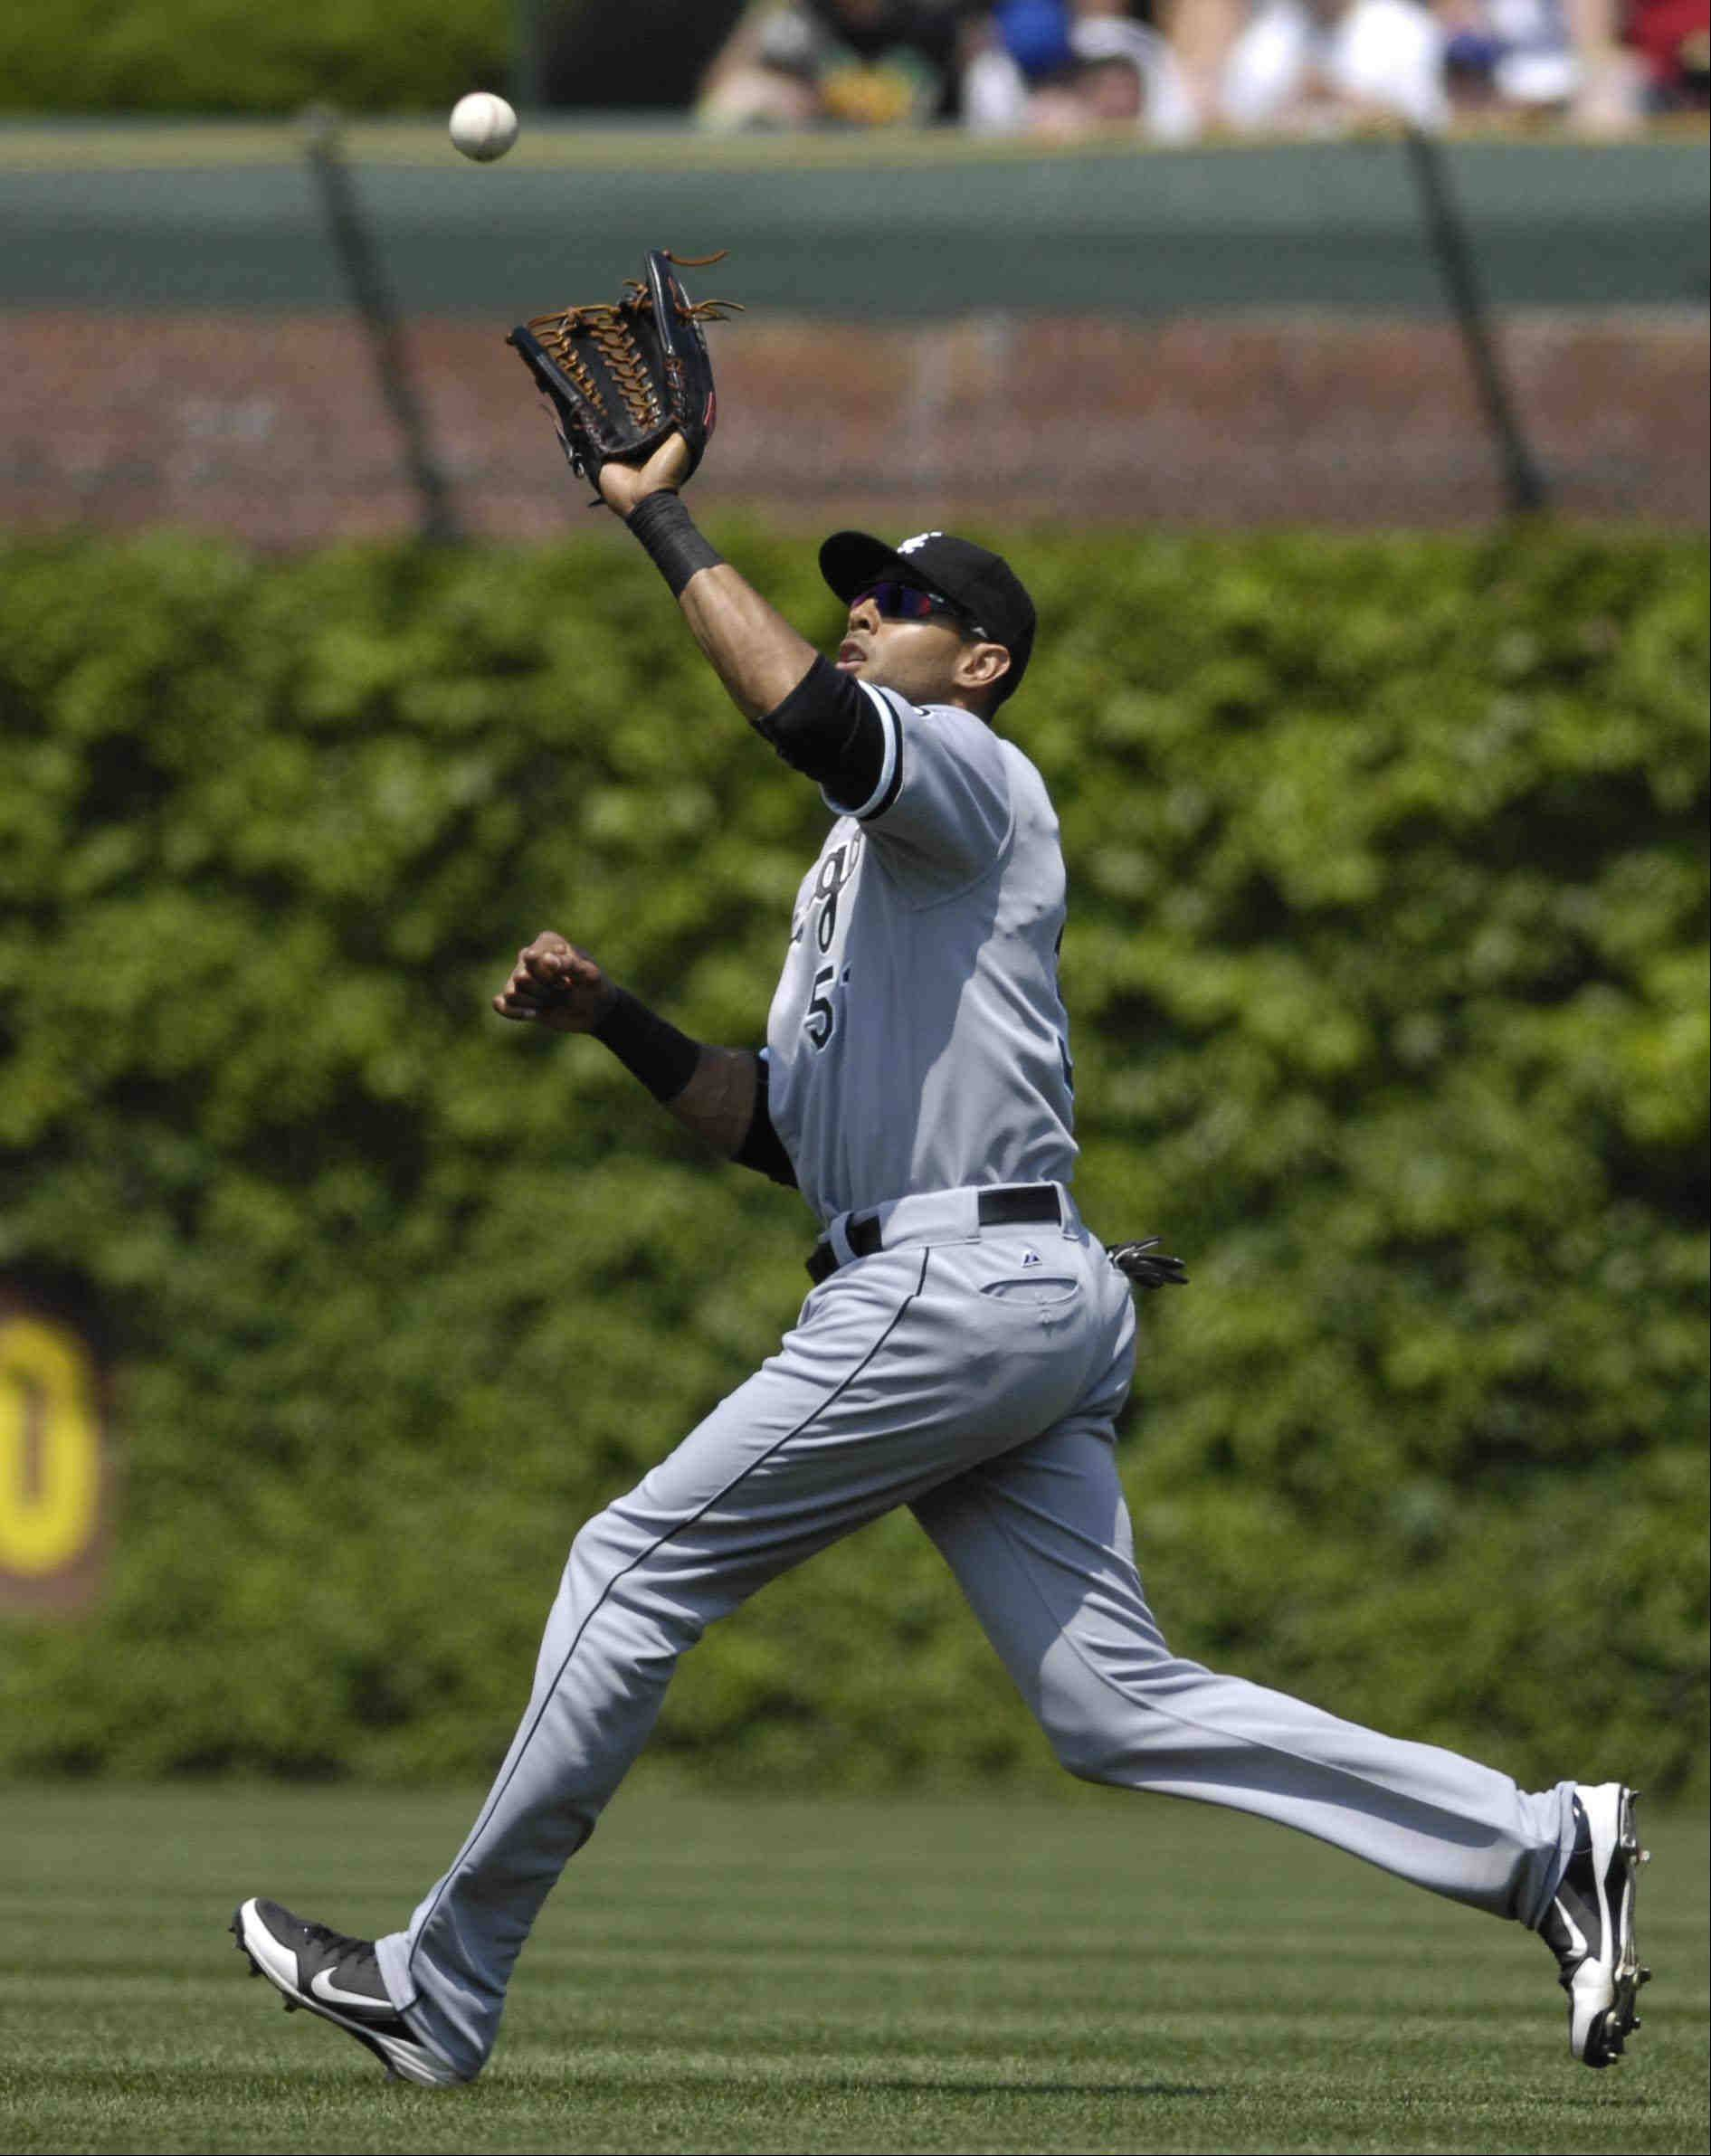 Chicago White Sox right fielder Alex Rios catches a Darwin Barney pop-up in the second inning.